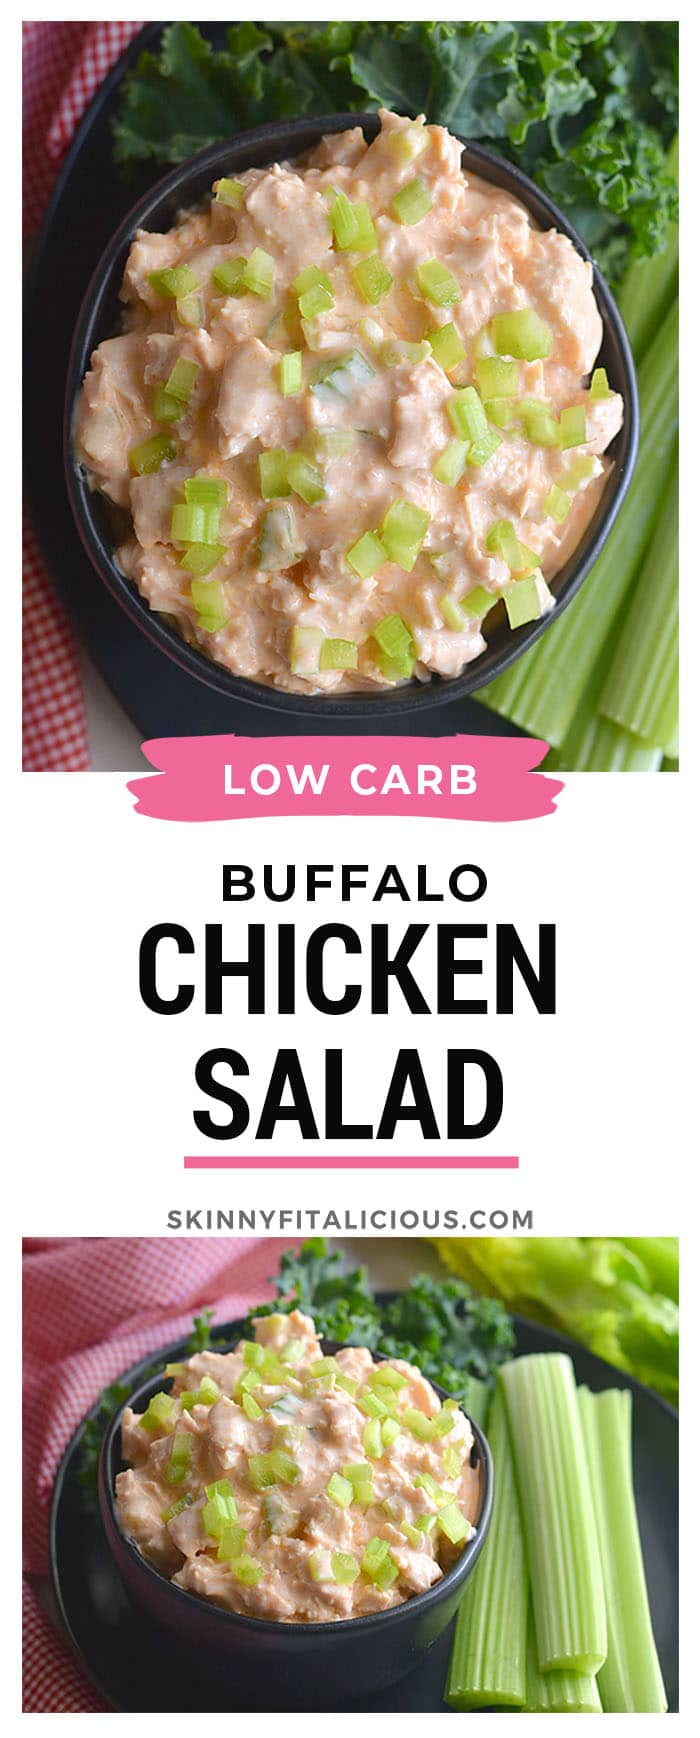 Low Carb Greek Yogurt Buffalo Chicken Salad! High protein and takes minutes to make with low sugar buffalo sauce. An easy meal prep lunch you can toss over a salad, on bread, in a wrap or tortilla. Low Carb + Gluten Free + Low Calorie